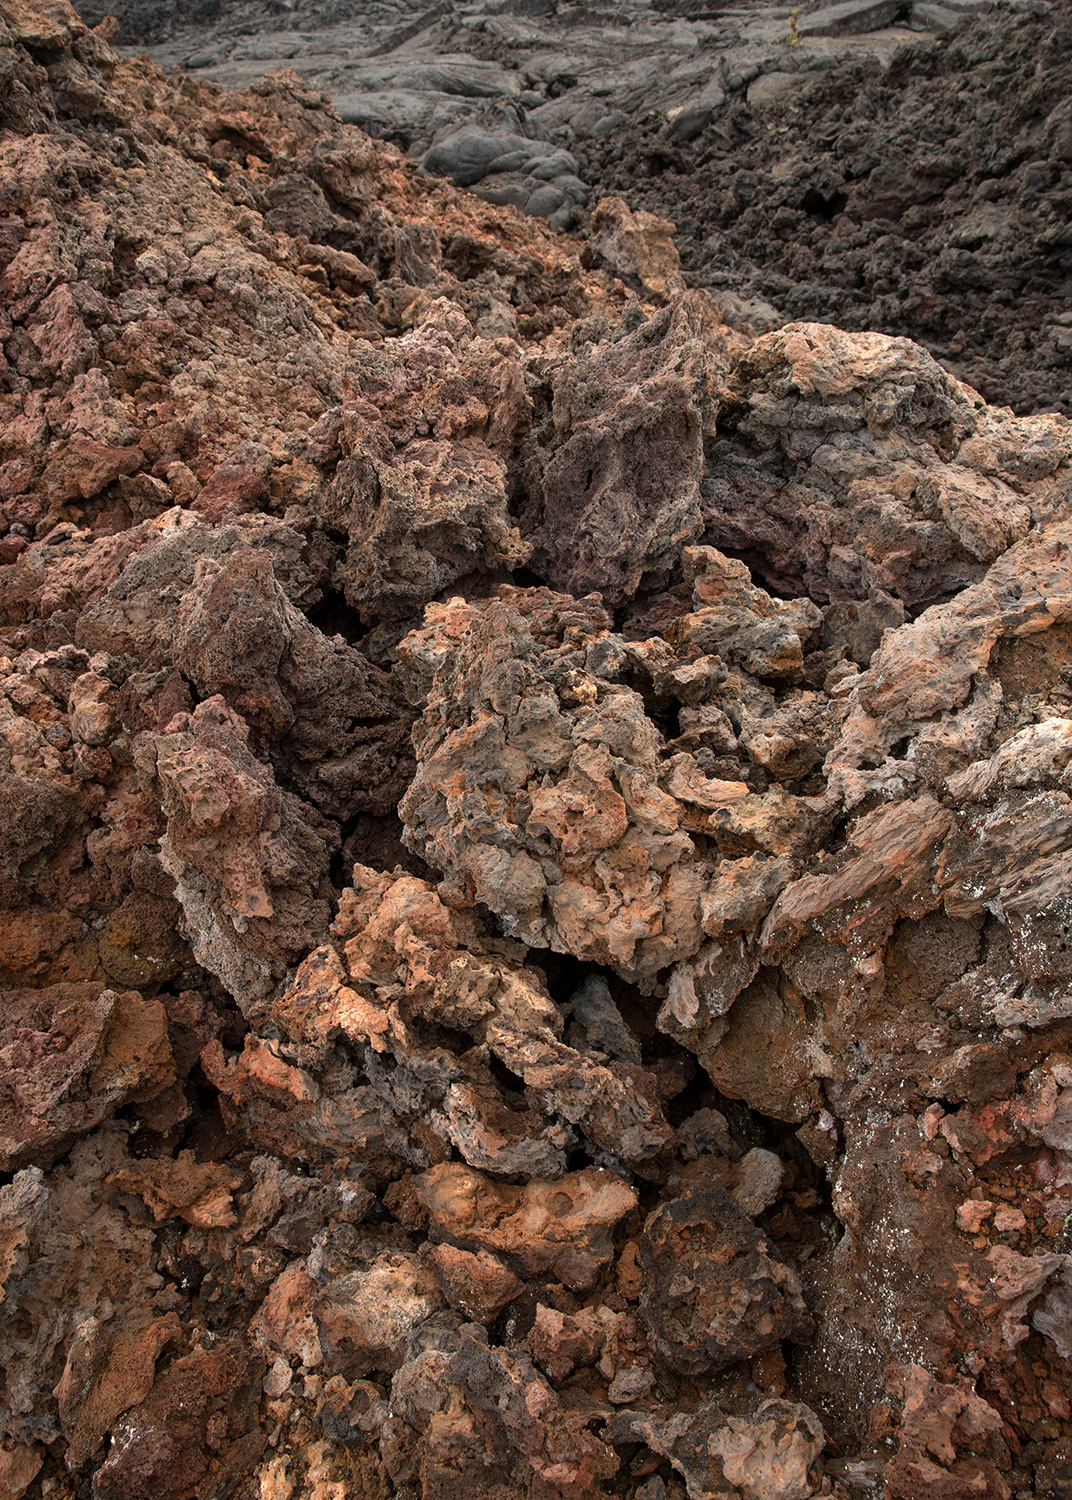 A detail of a lava field at the HI-SEAS Mars simulation habitat on the island of Hawaii on Aug. 29, 2016.